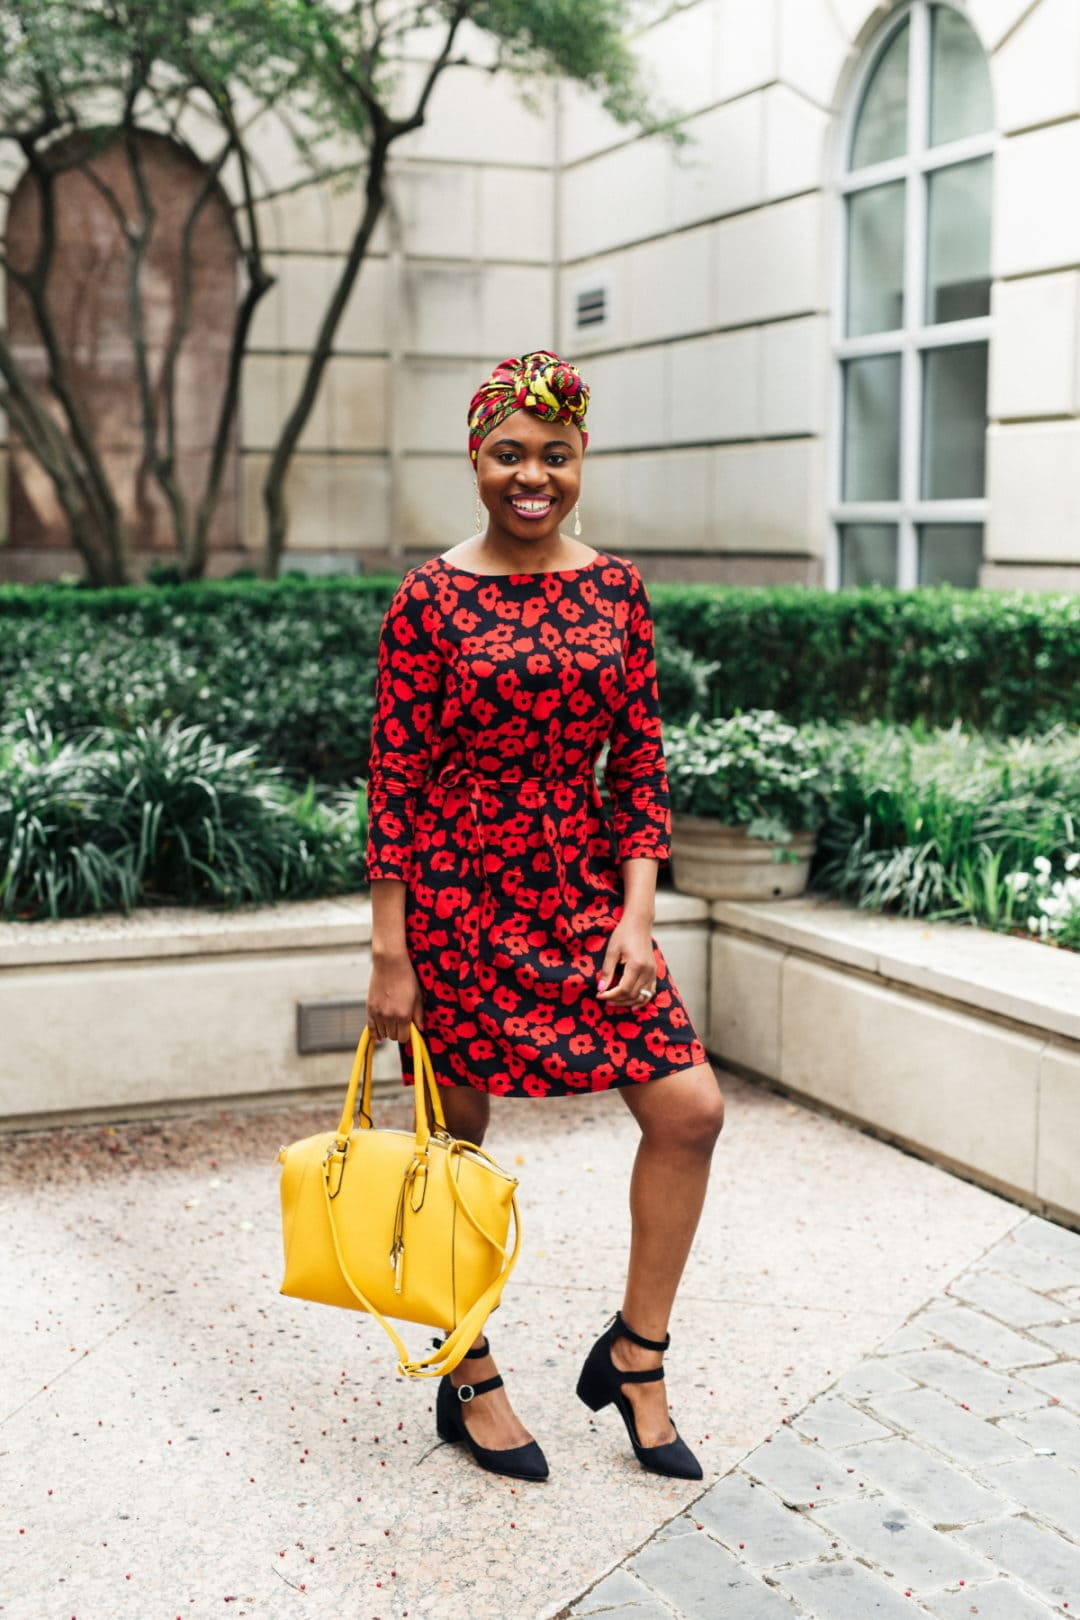 Crushing on this dazzling head wrap outfit espexxially with how she paired that African print turban with a cute summer dress. An unlikely combination that works perfect for the office, school, brunch, church, and even weddings. Plus it's an effortless style on bad hair days. #africanfashionstyles #ankara #dashiki #headwraps